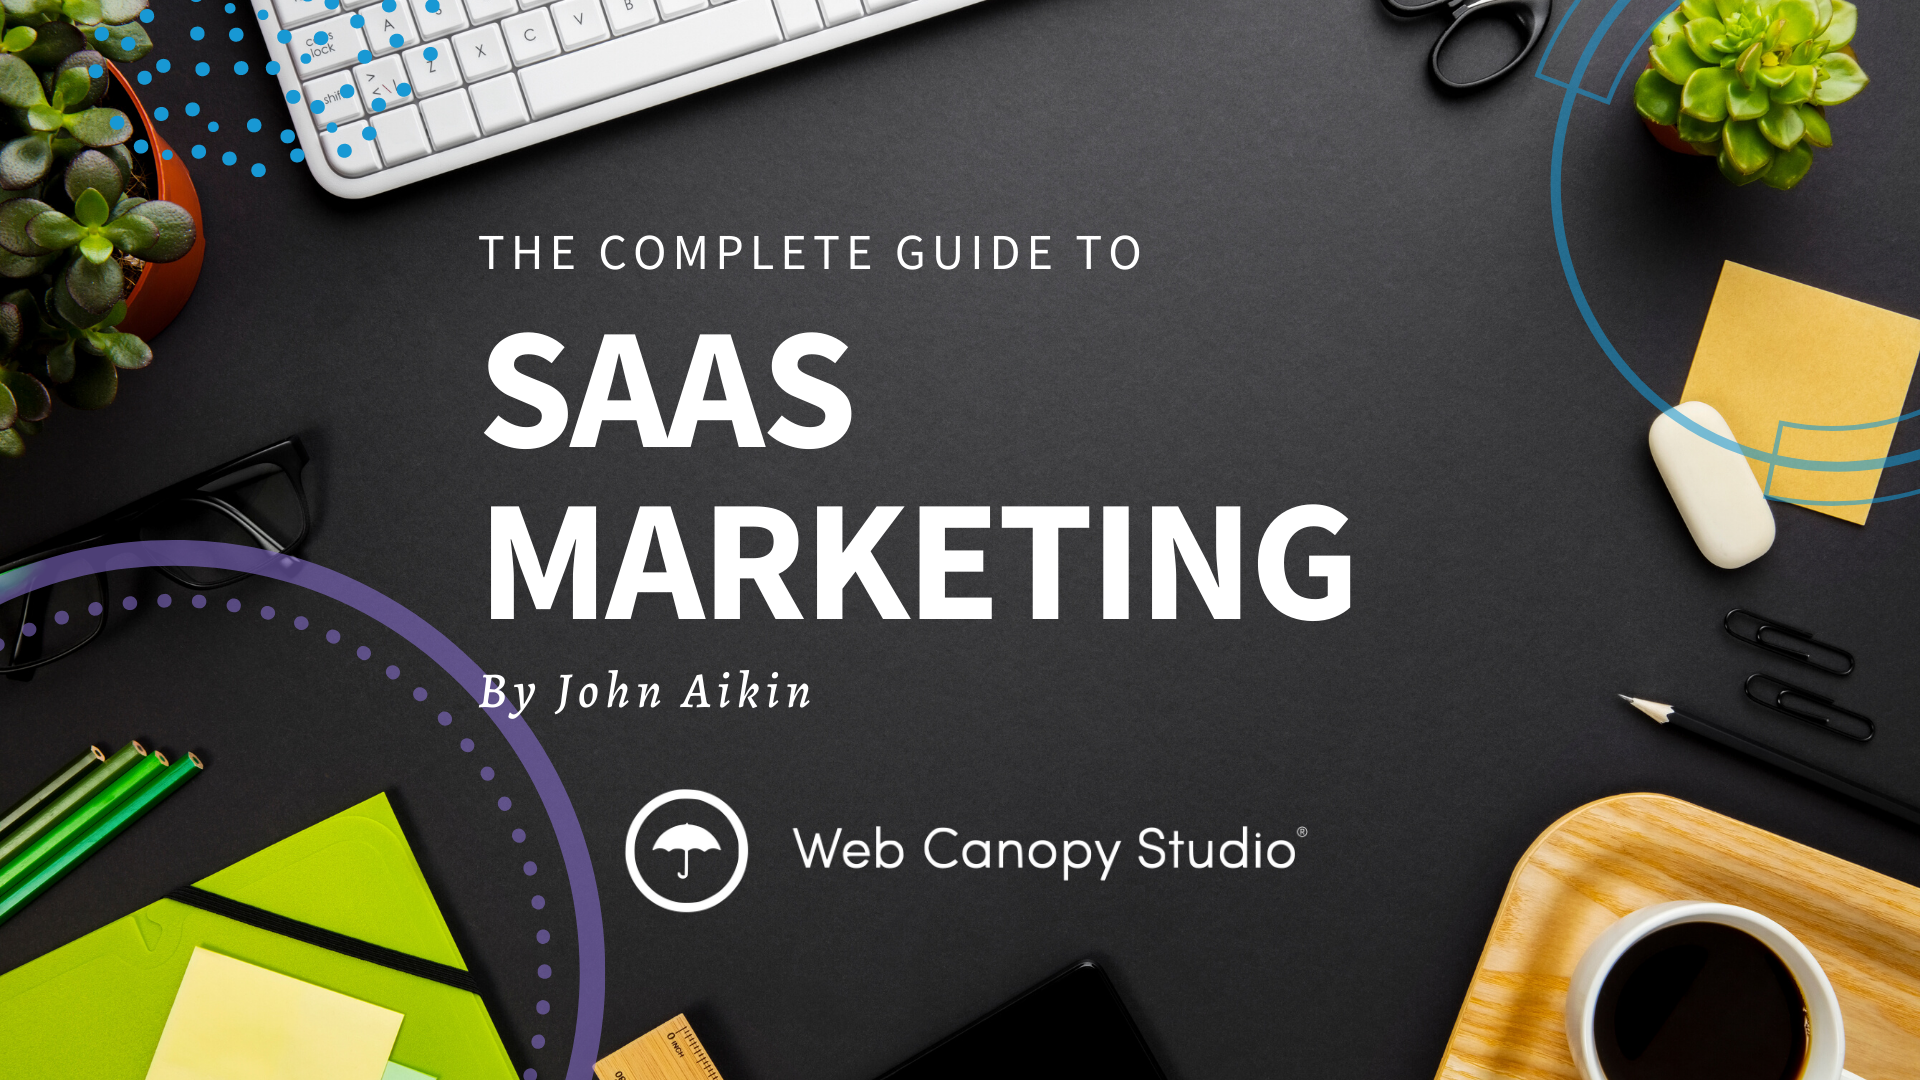 The complete guide to what is SaaS marketing, including how-to's, SaaS funnels, and so much more for improving conversion rates and increasing your free trials and demos